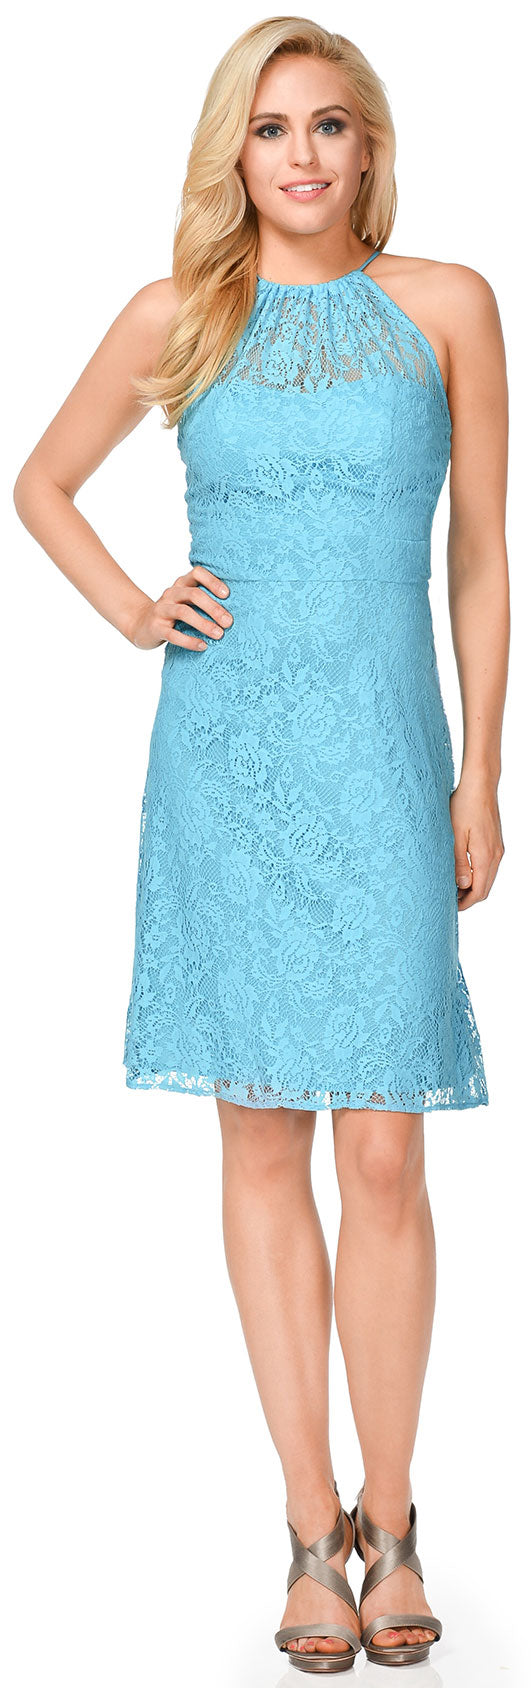 Main image of Halter Neck Floral Lace Short Bridesmaid Party Dress